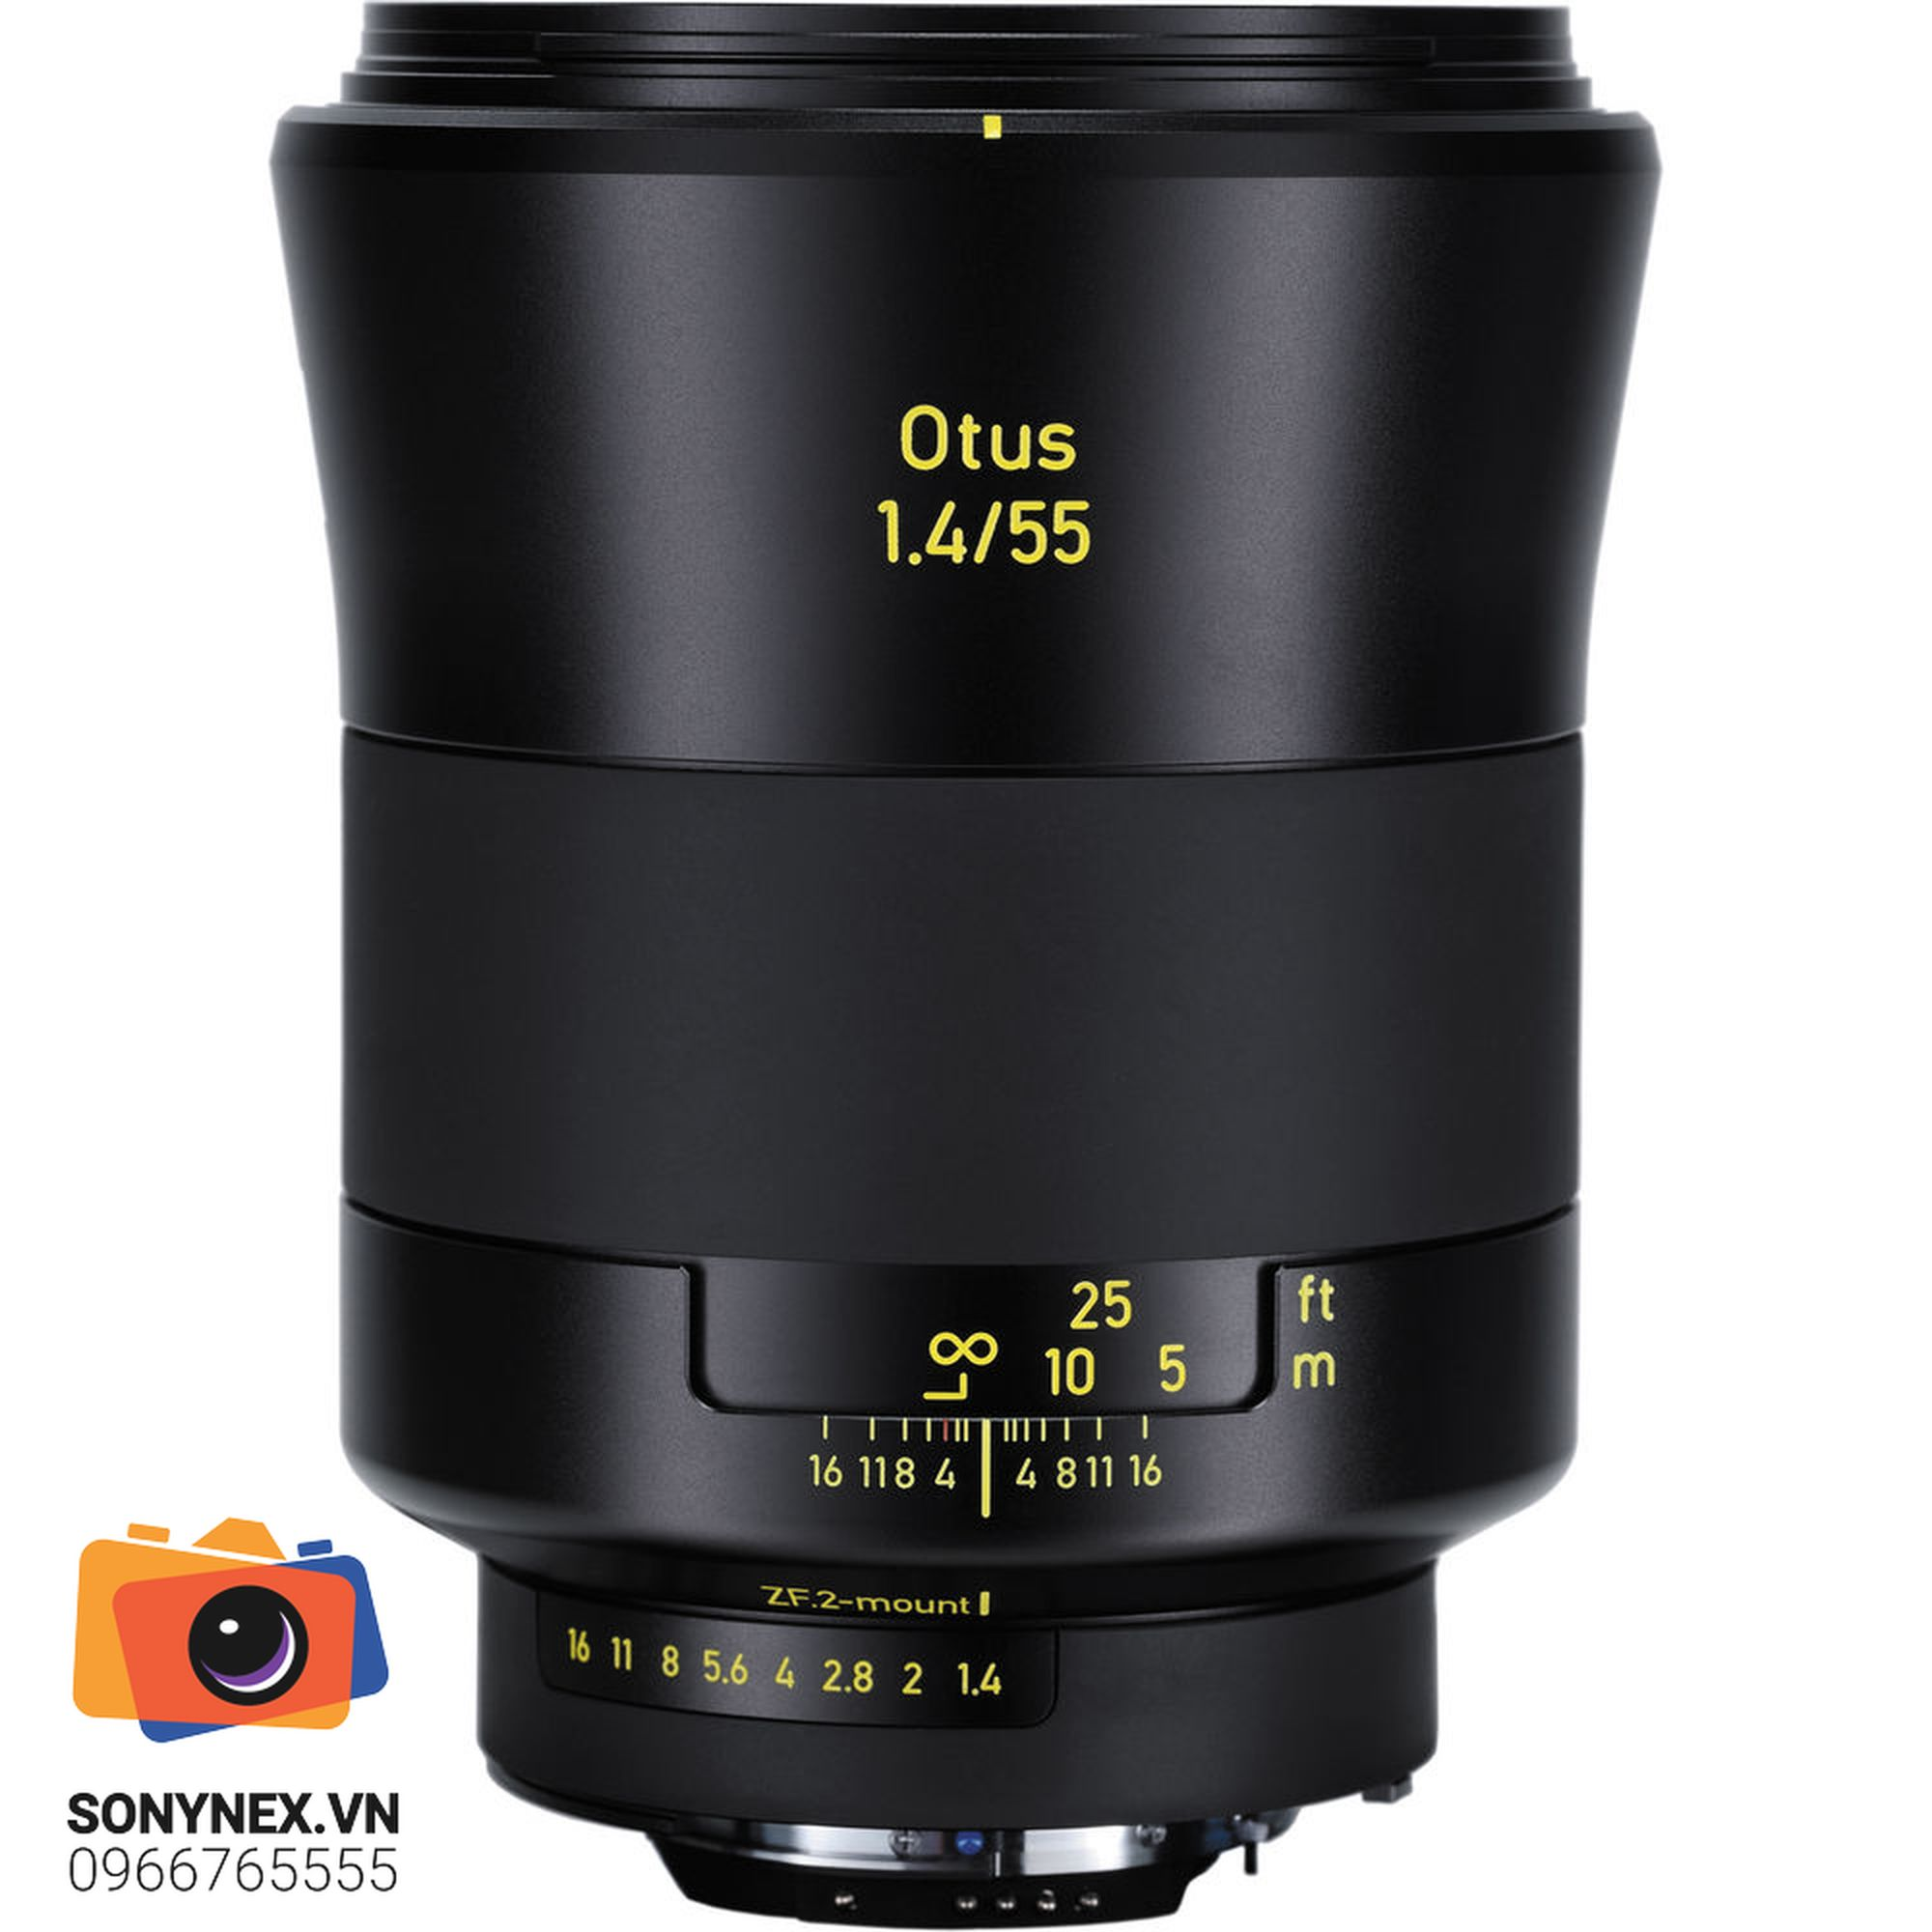 Zeiss 55mm f/1.4 Otus Distagon T* Lens for Nikon F Mount | Chính hãng